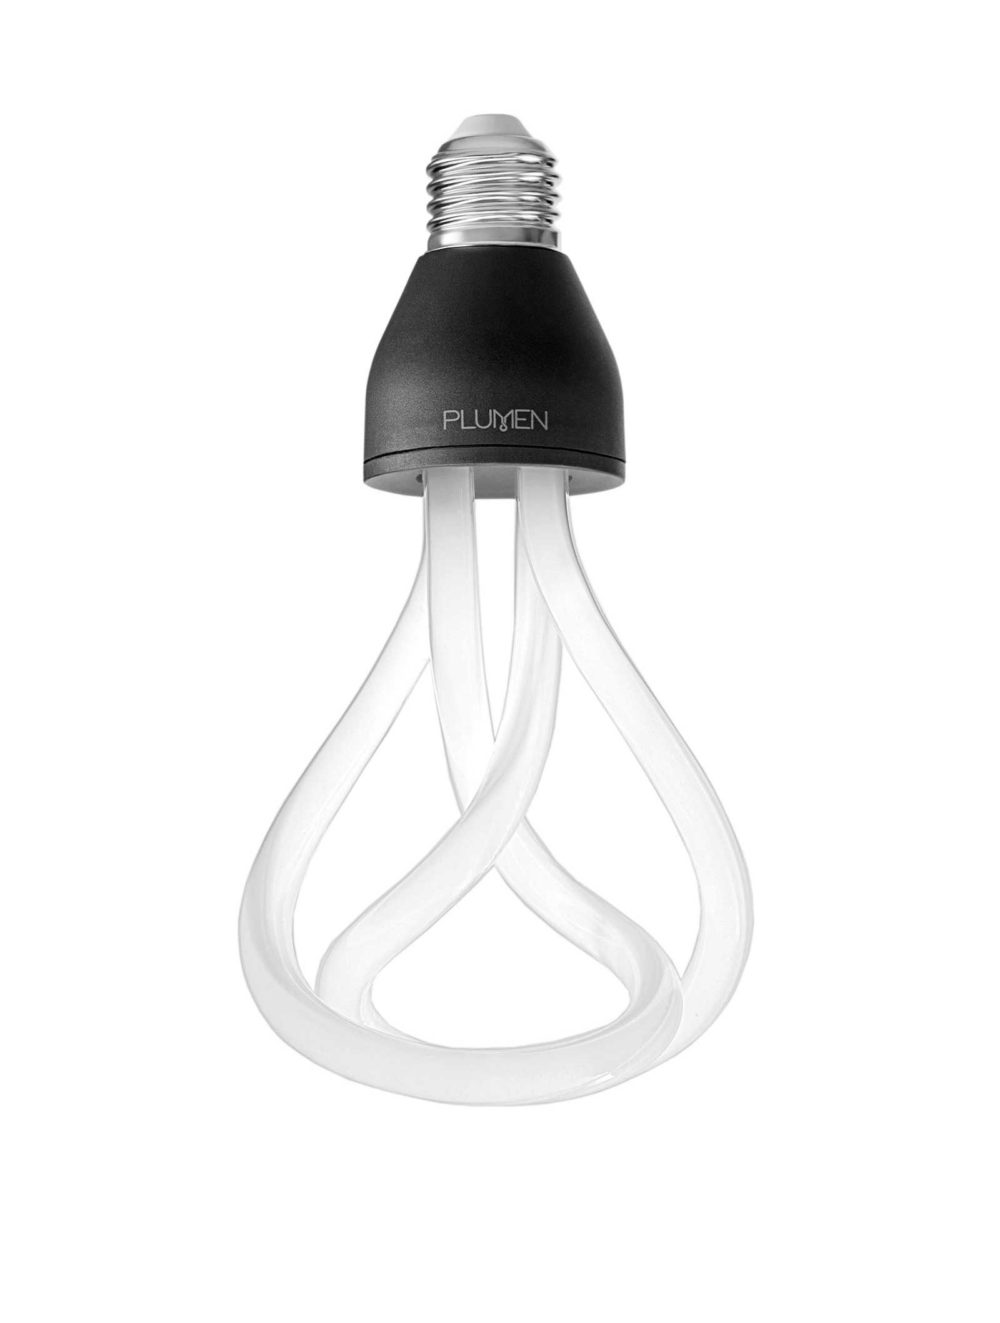 Plumen 001 — Samuel Wilkinson Studio:Plumen 001 is the antithesis of low energy light bulbs as we know them,  rather than hide the unappealing traditional compact fluorescent light  behind a ...,Lighting